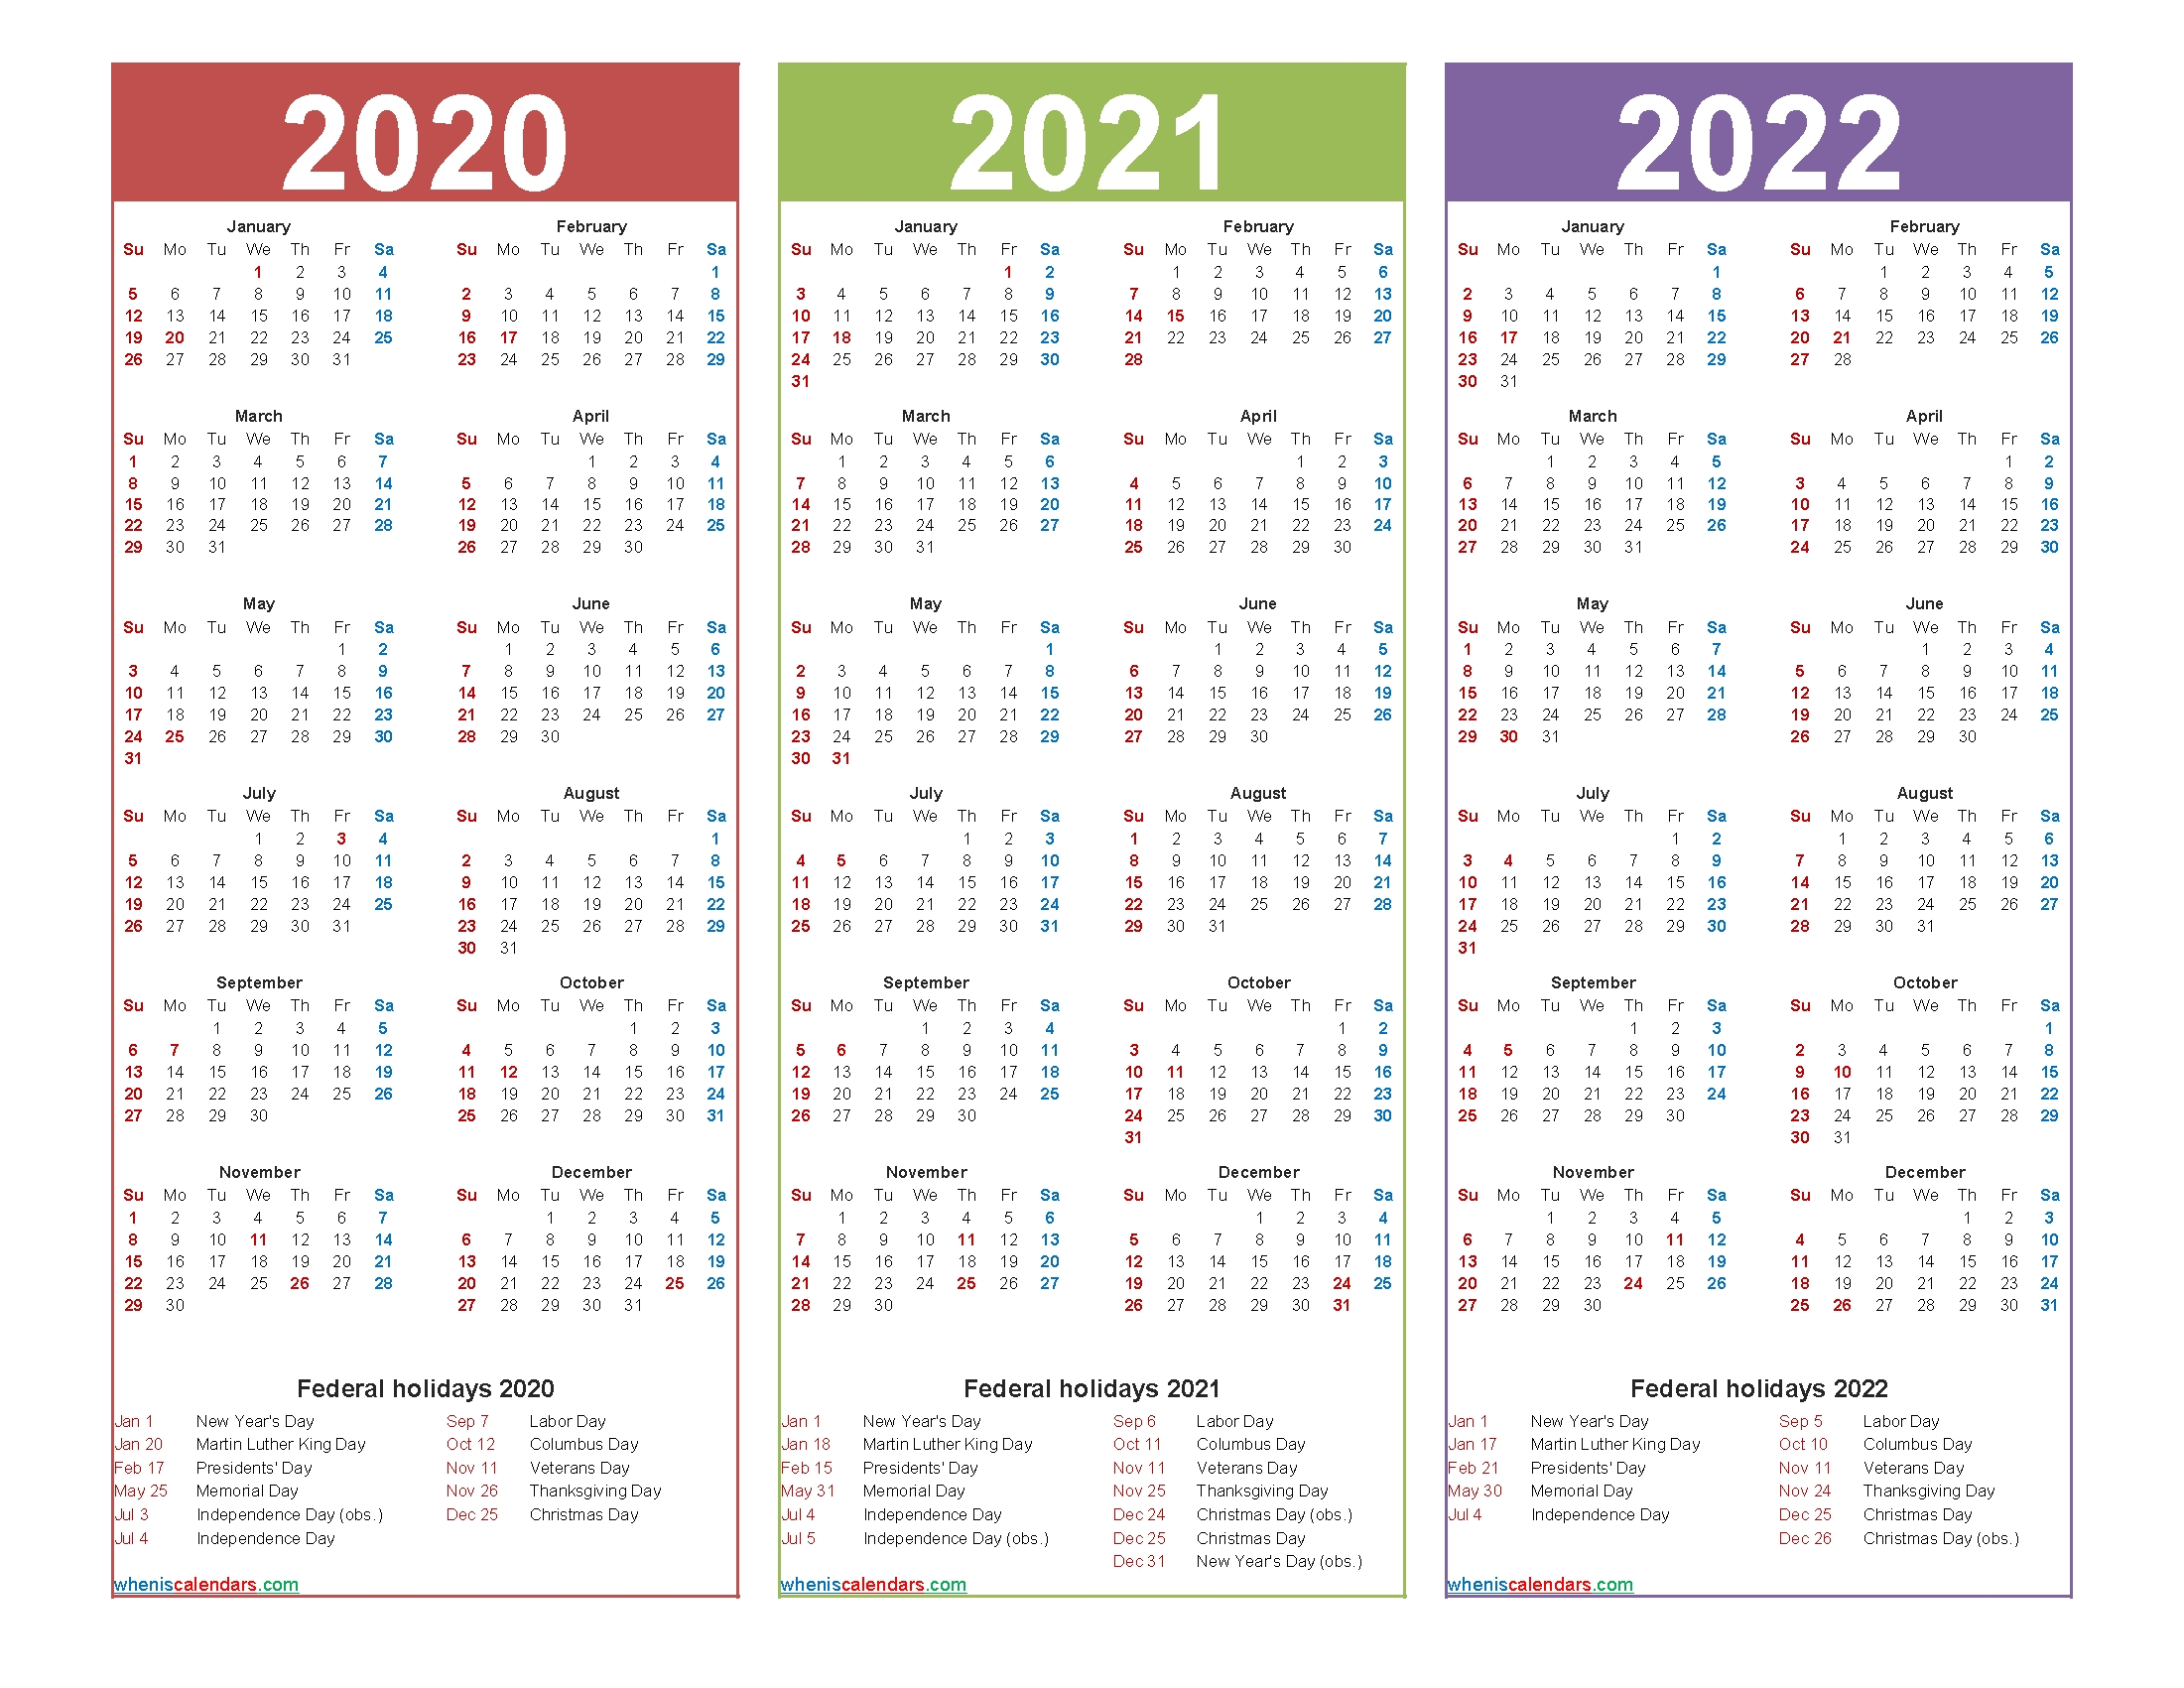 3 Year Calendar 2020 To 2022 Calendar With Holidays pertaining to Calendar For 2020 2021 2022